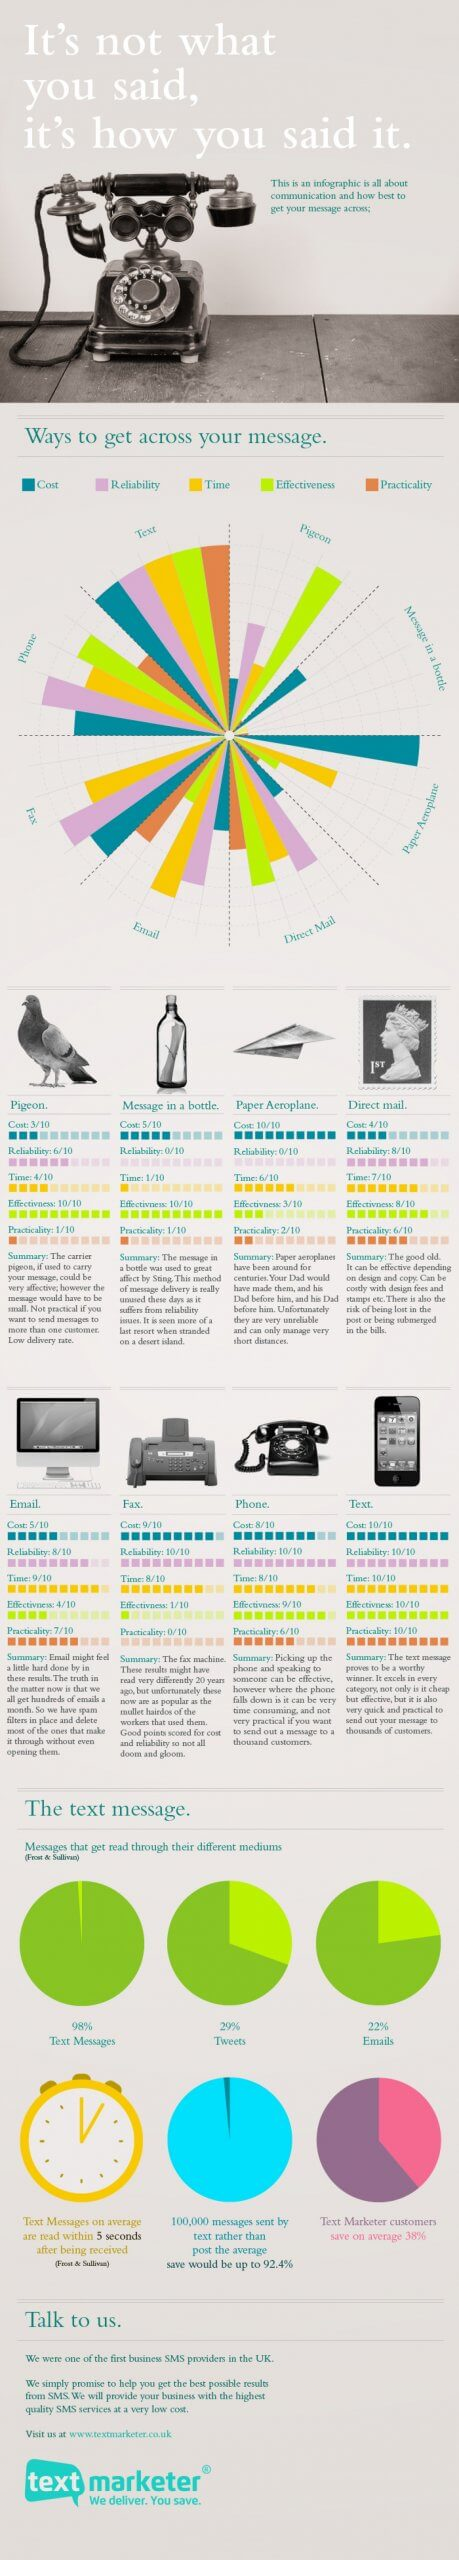 Text Marketer it's not what you said but how you said it infographic